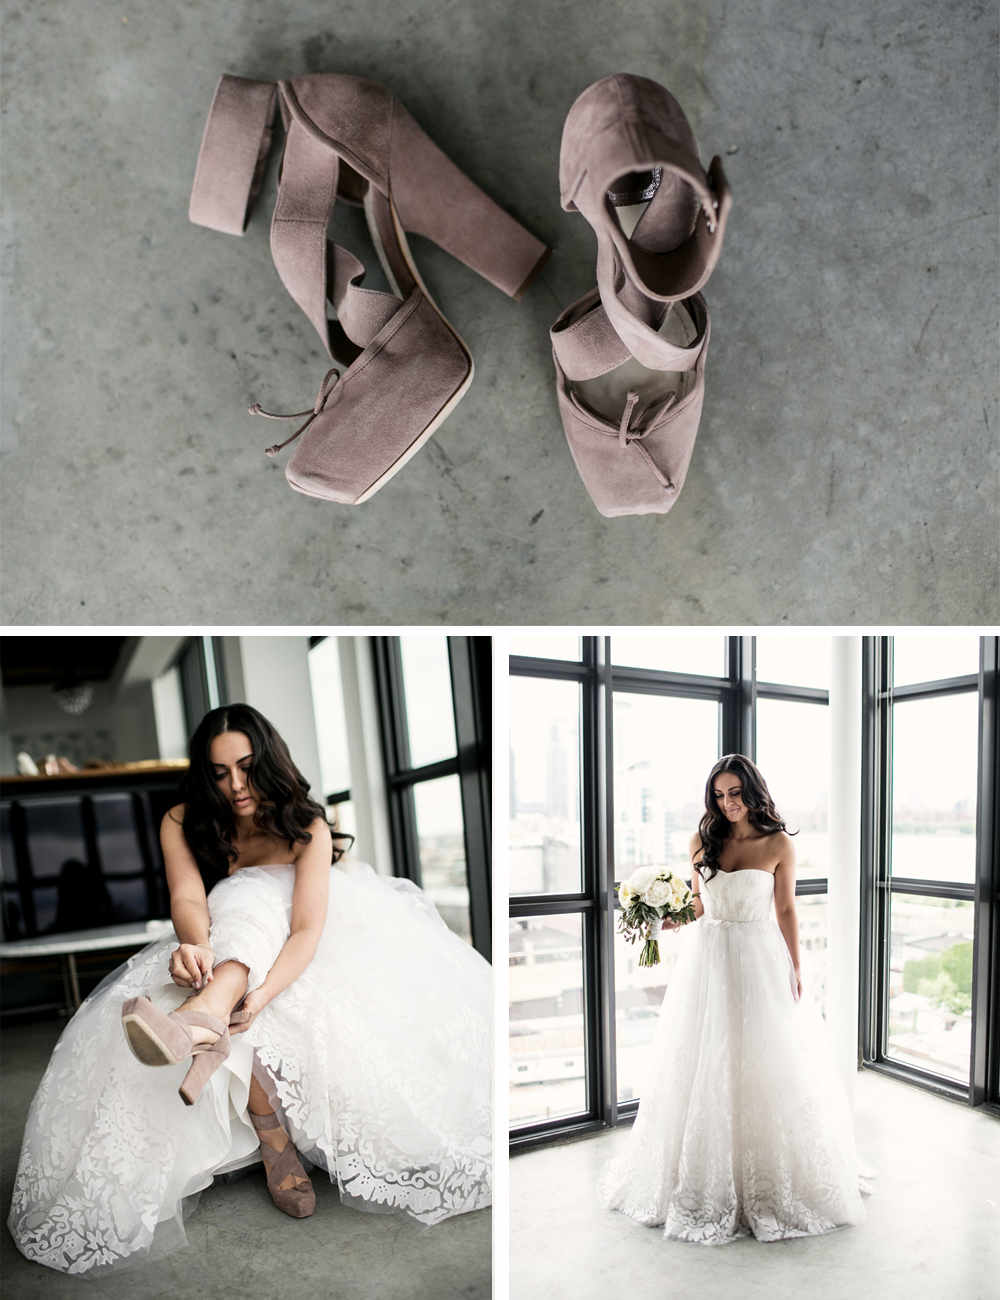 Jewish Greek Wedding at Brooklyn Botanical Garden New York shoes